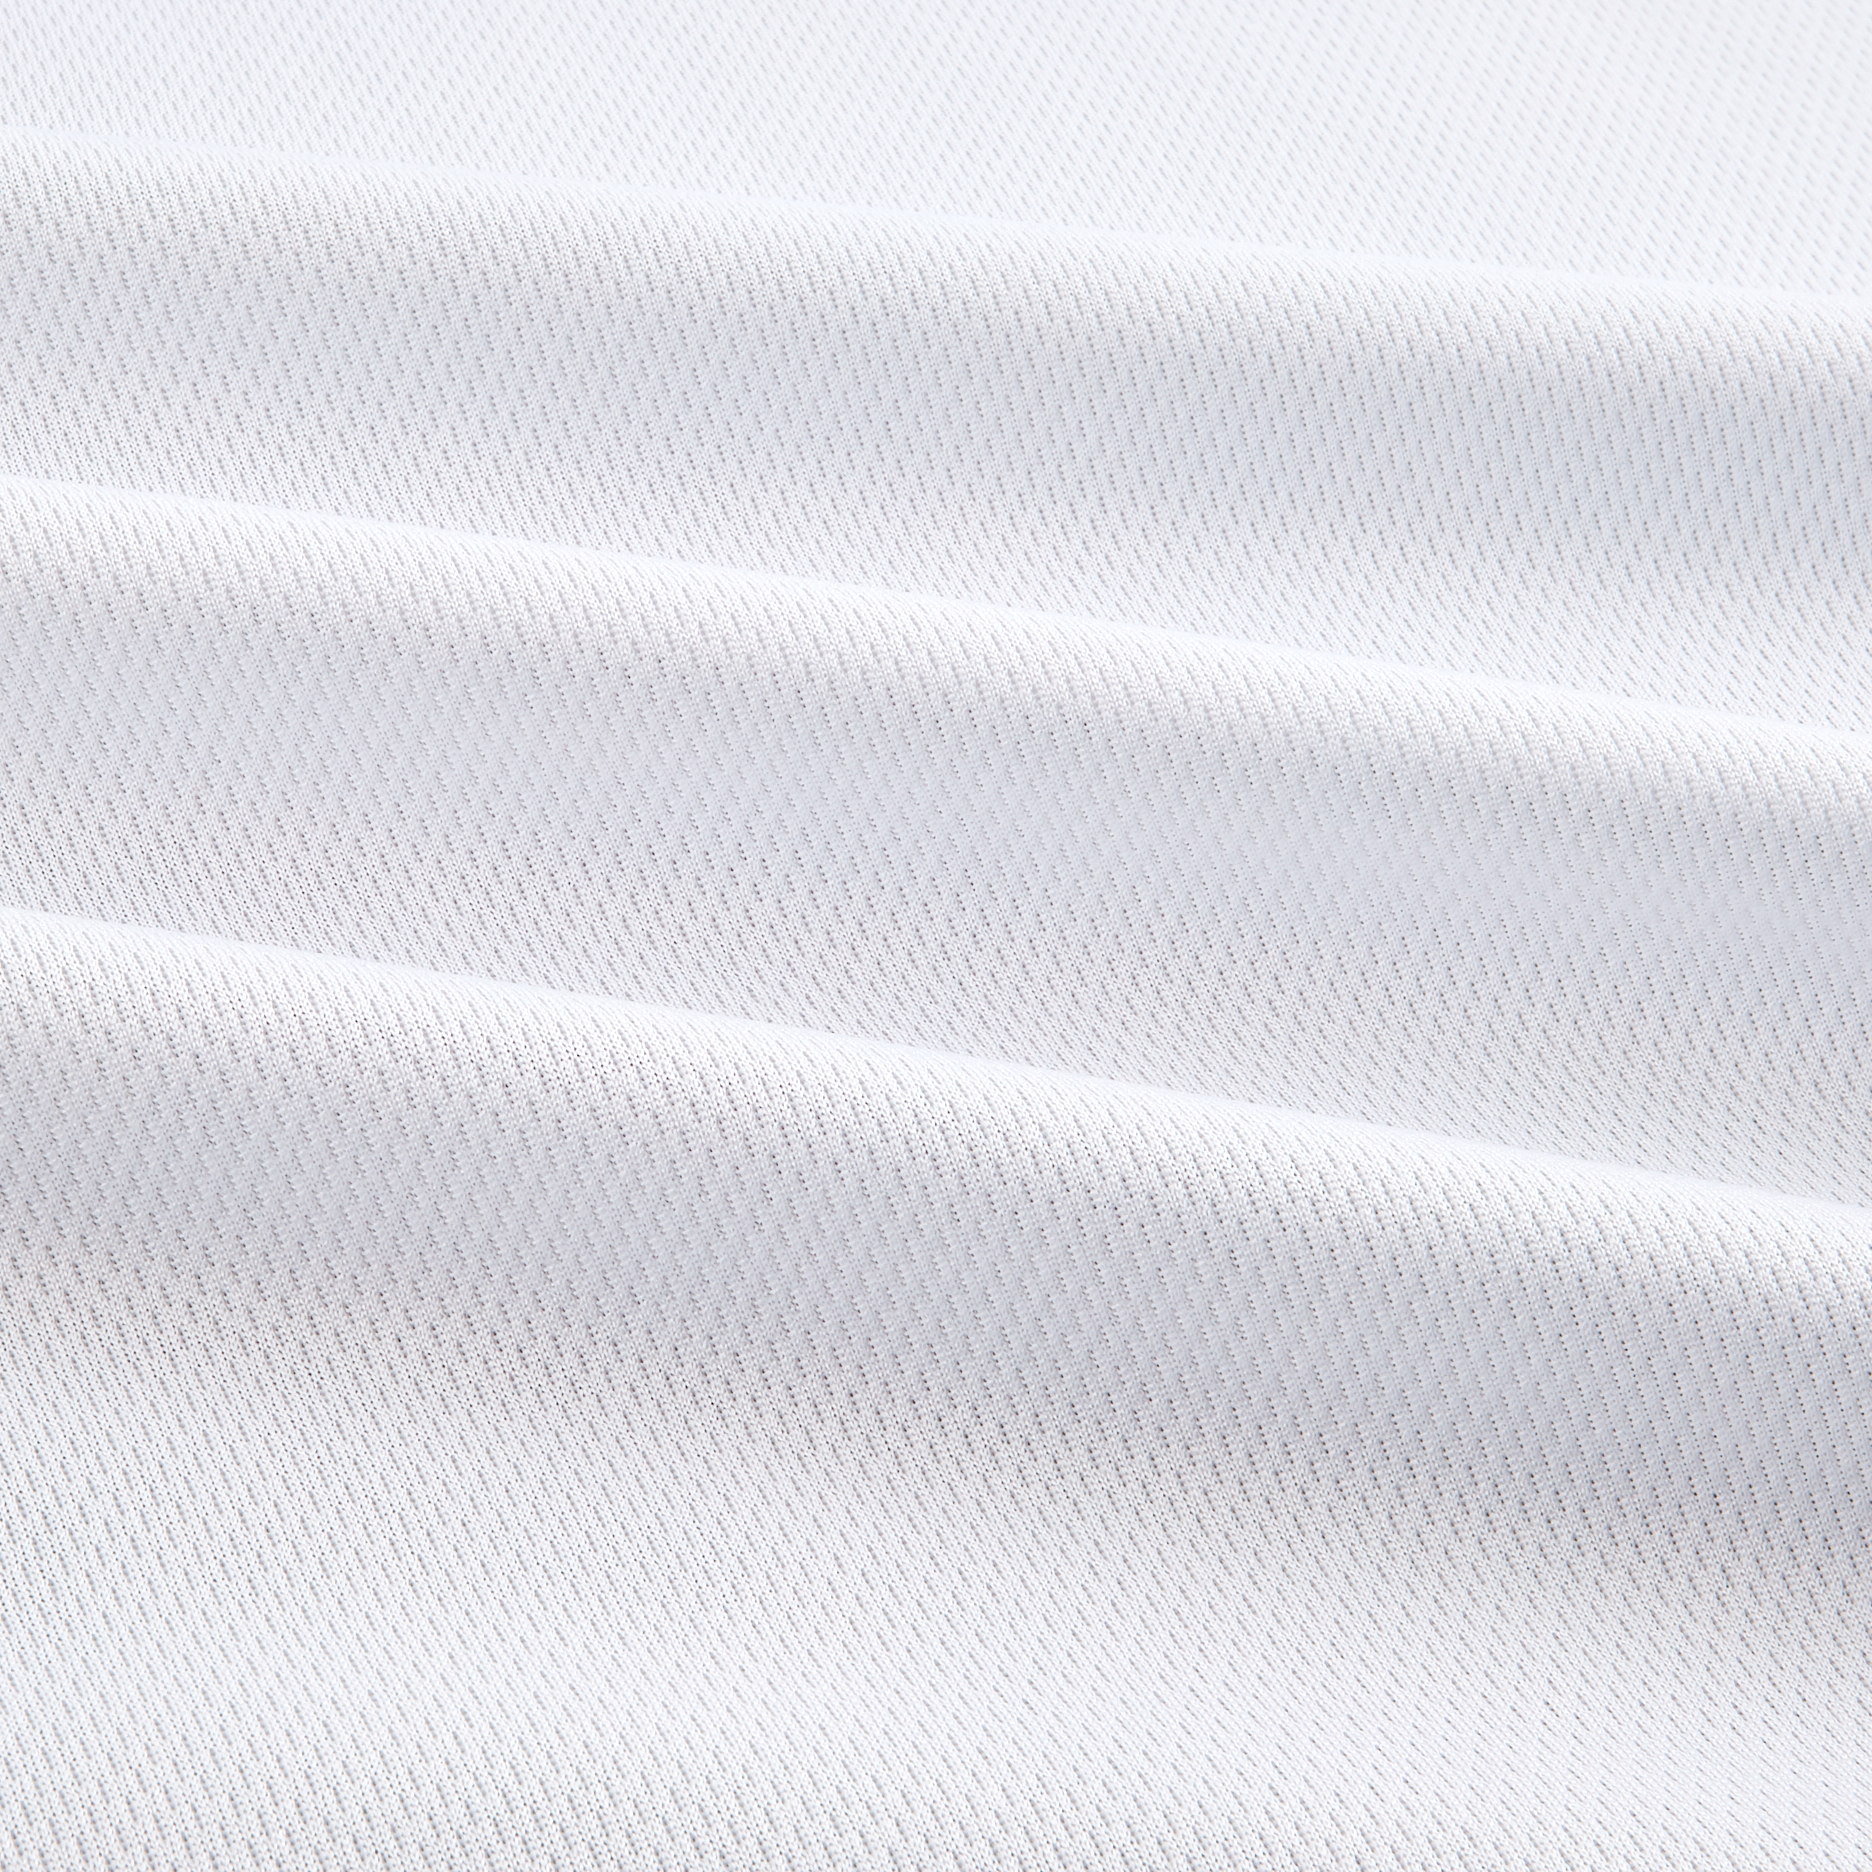 Athletic Mesh Knit White Fabric 0269440